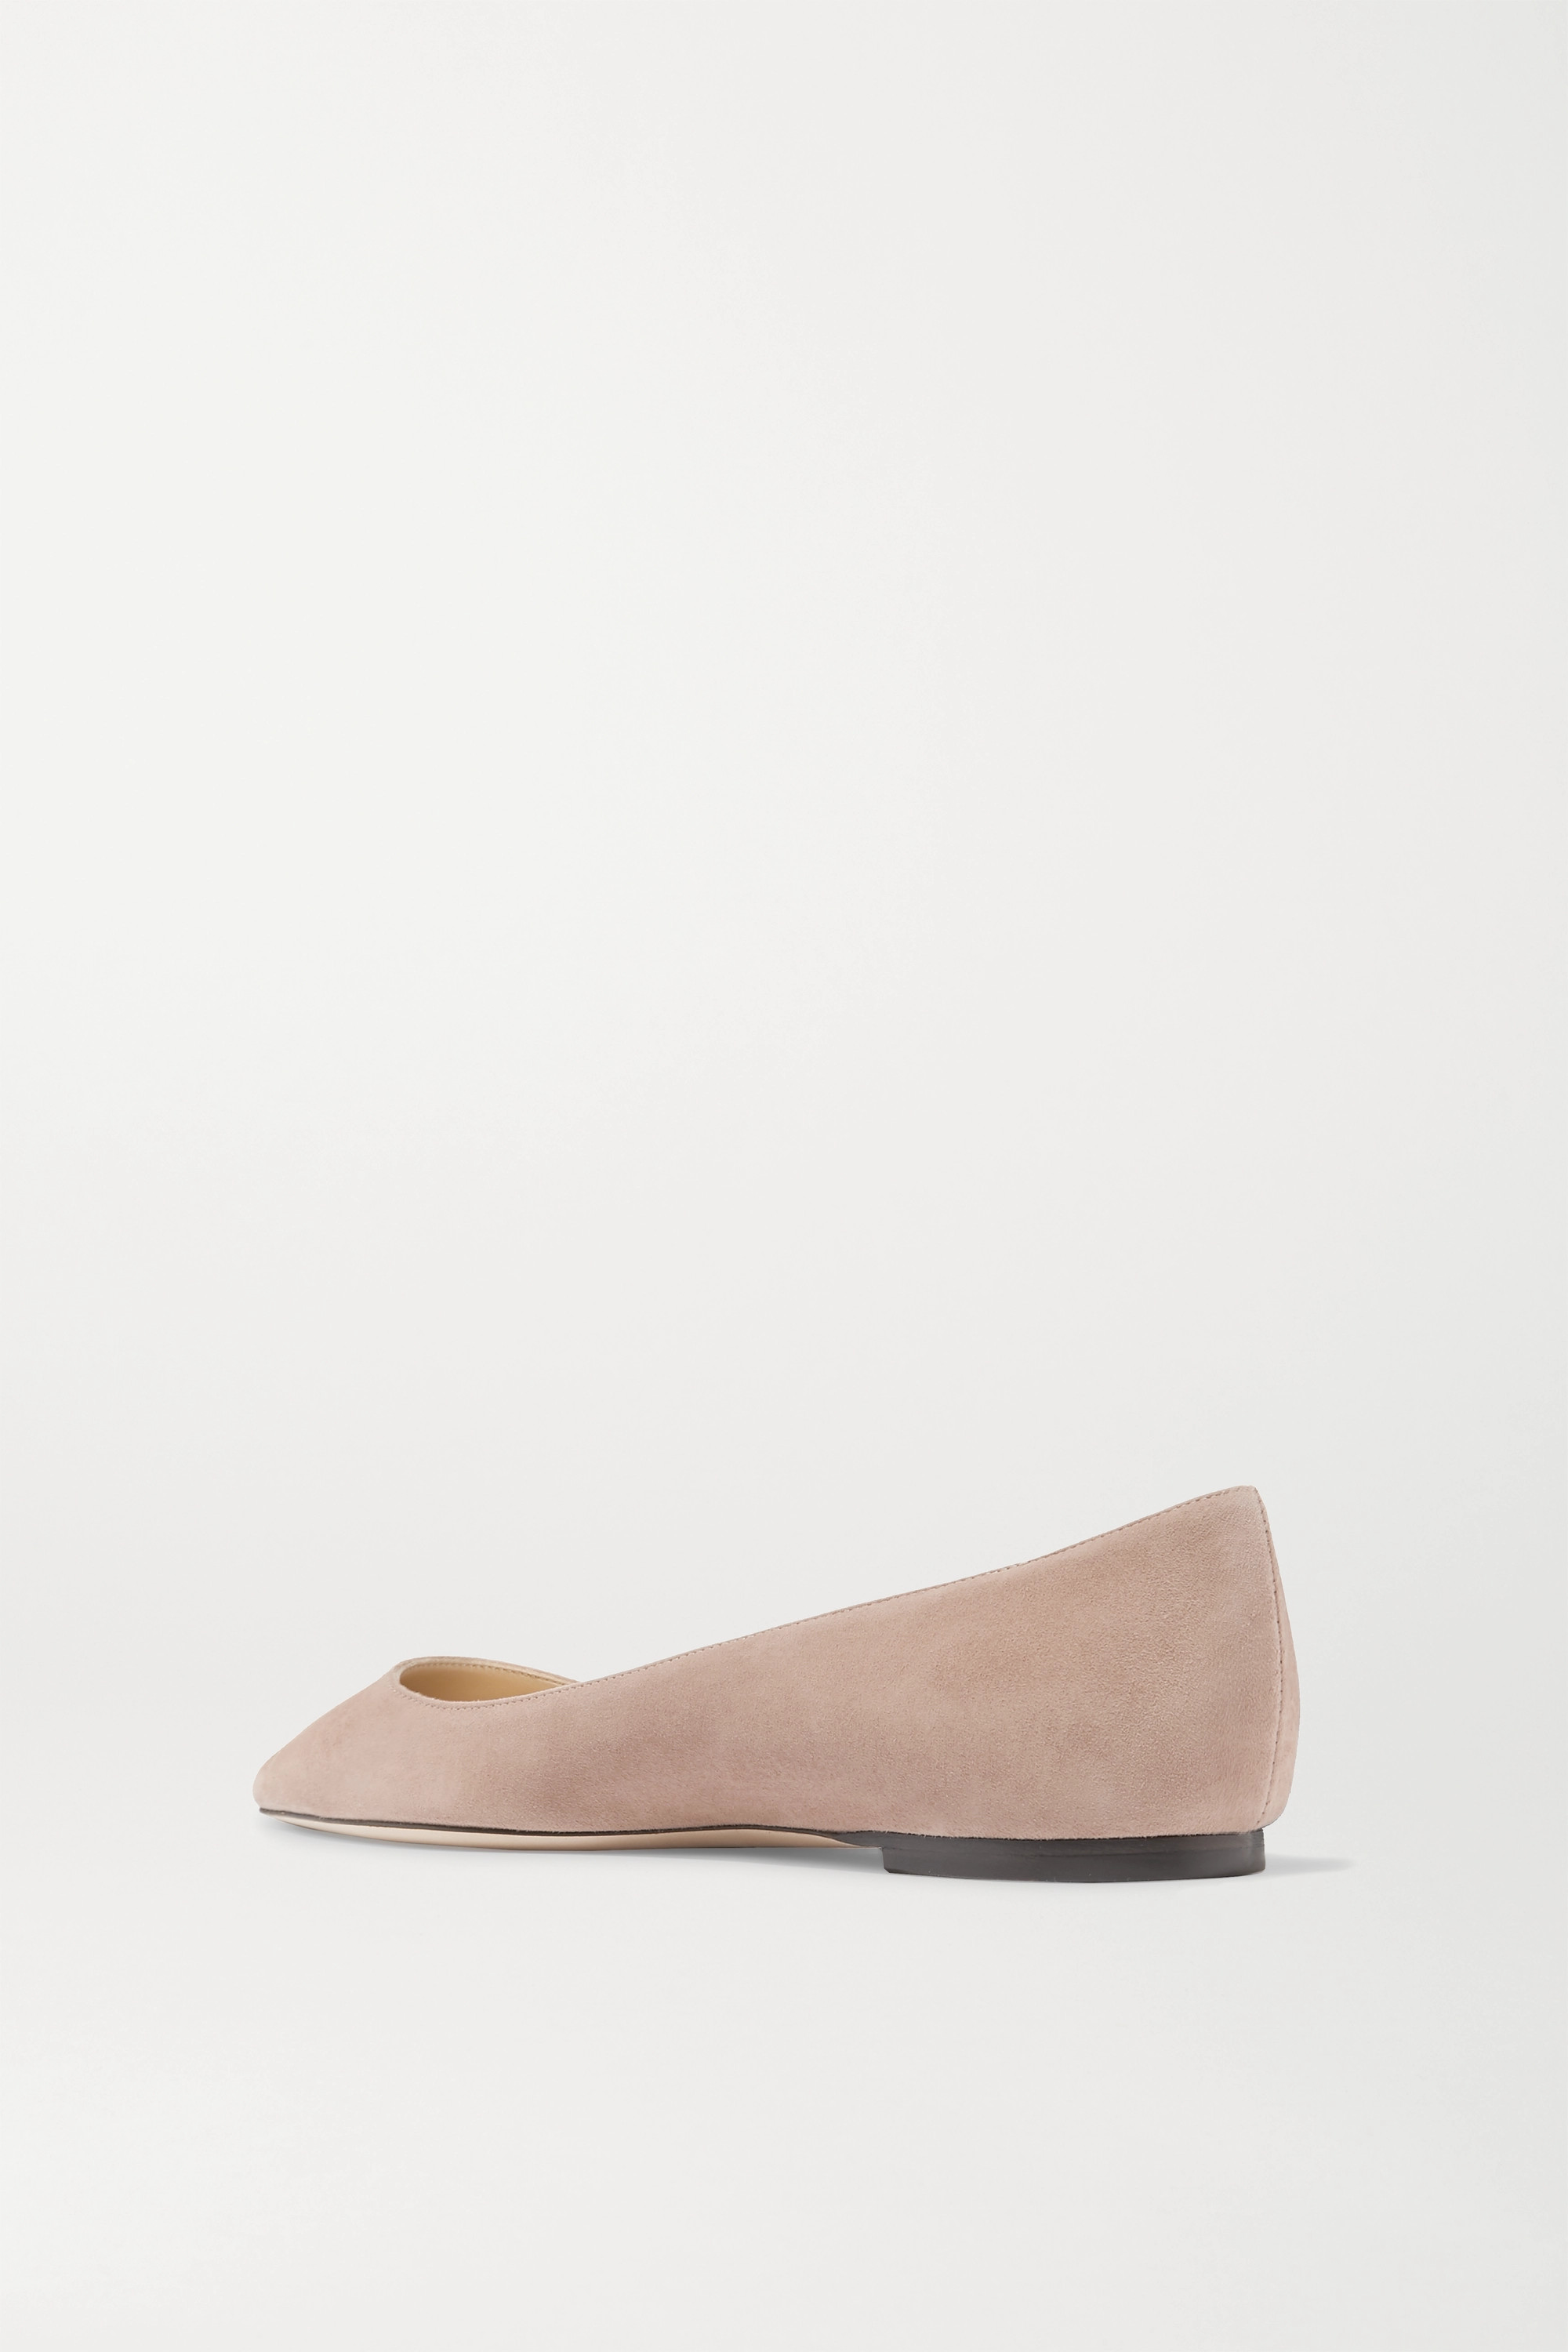 Antique Rose Romy Suede Point-toe Flats | Jimmy Choo